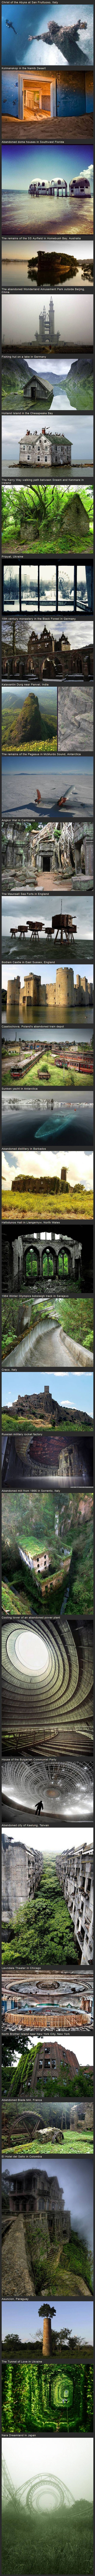 Abandoned buildings and structures around the world. JOIN our ABANDONED Group Board here: http://pinterest.com/deyzel/abandoned-ghost-towns-structures-group-board/  images via: http://imgur.com/a/D9iDC